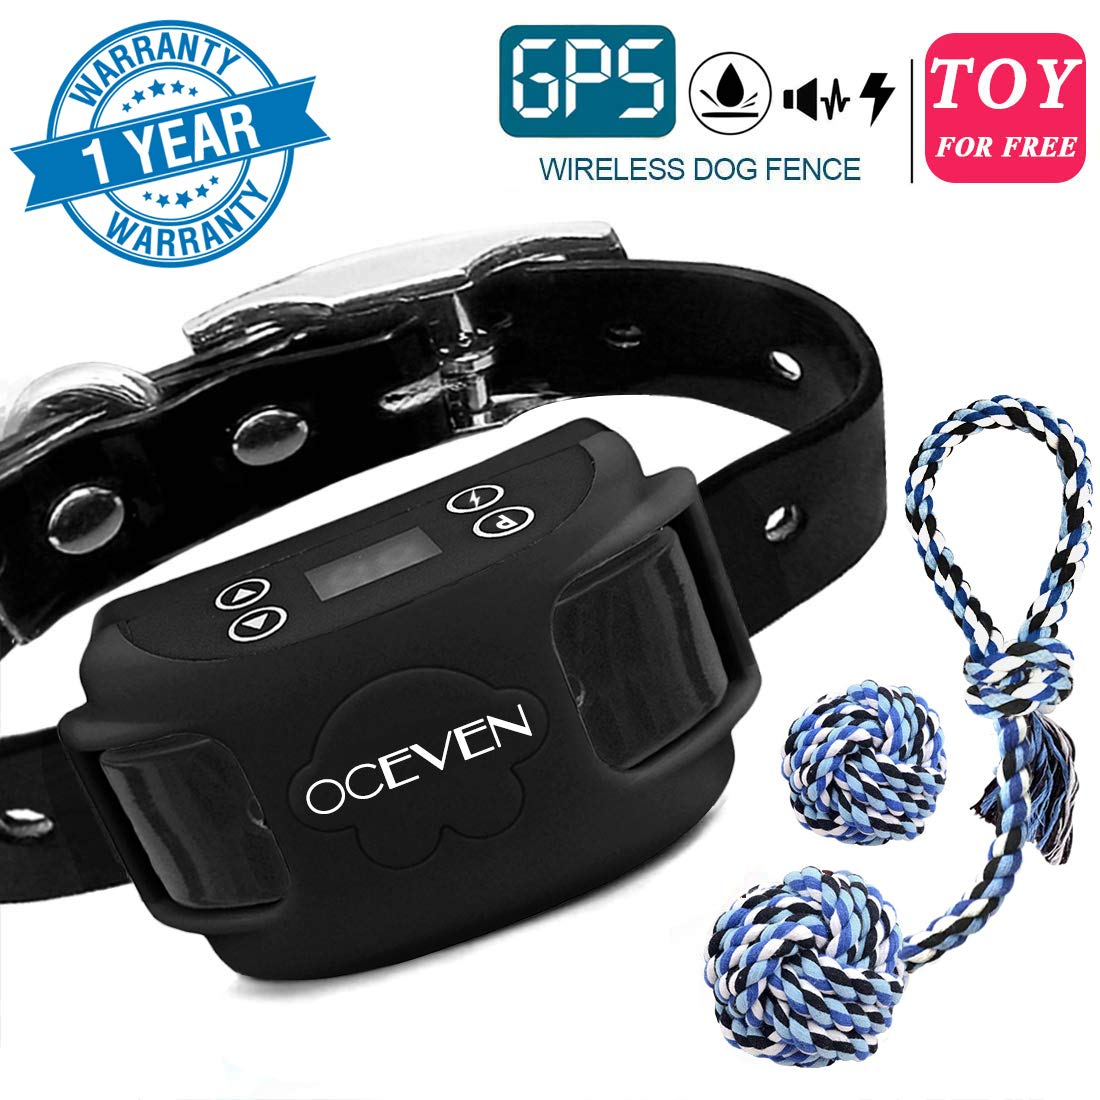 OCEVEN Wireless Dog Fence System with GPS, Outdoor Pet Containment System Rechargeable Waterproof Collar EF851S, Black, for 15lbs-120lbs Dogs with 2pcs Toys for Free